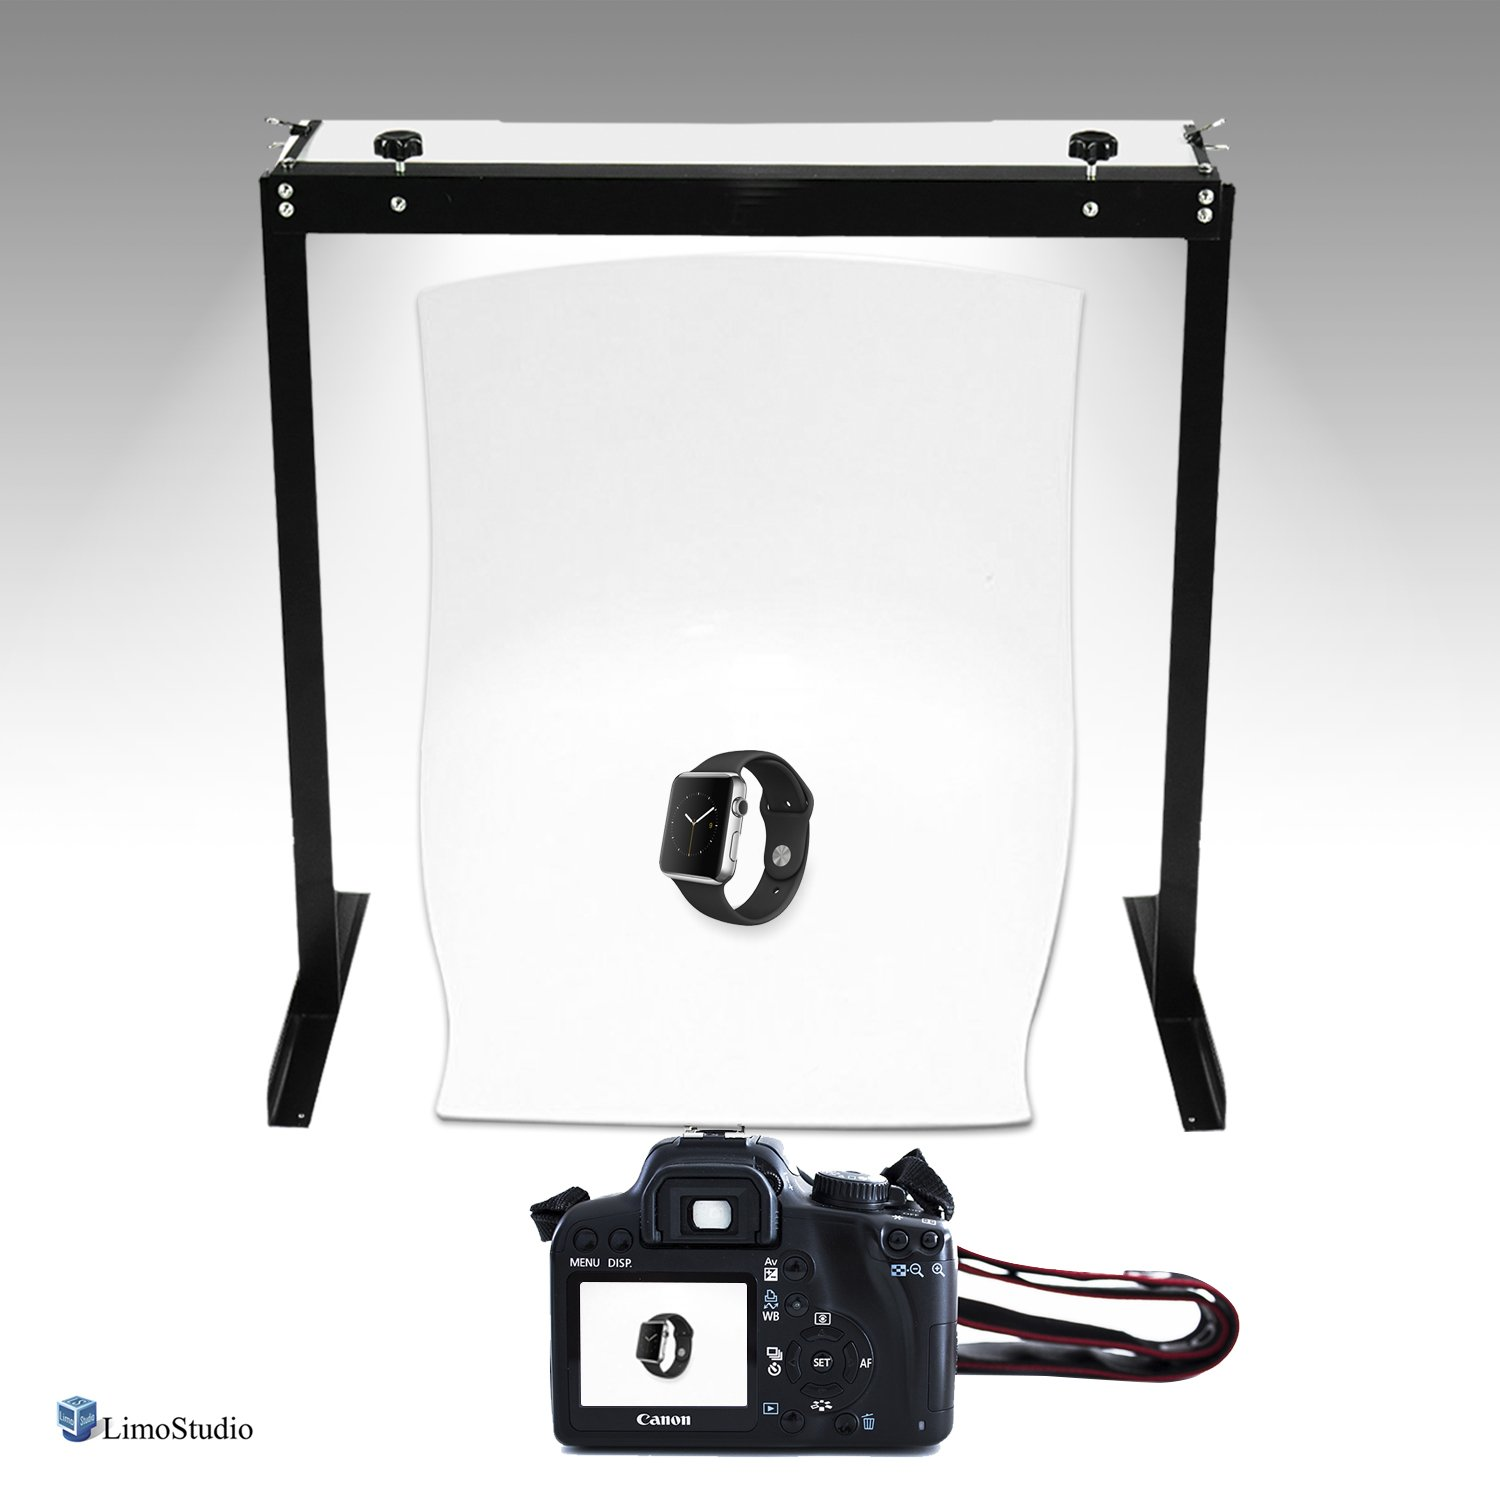 LimoStudio LED Table Top Lighting Kit with Seamless White Table Top Background for Product Photography and Photo Shooting, AGG2596